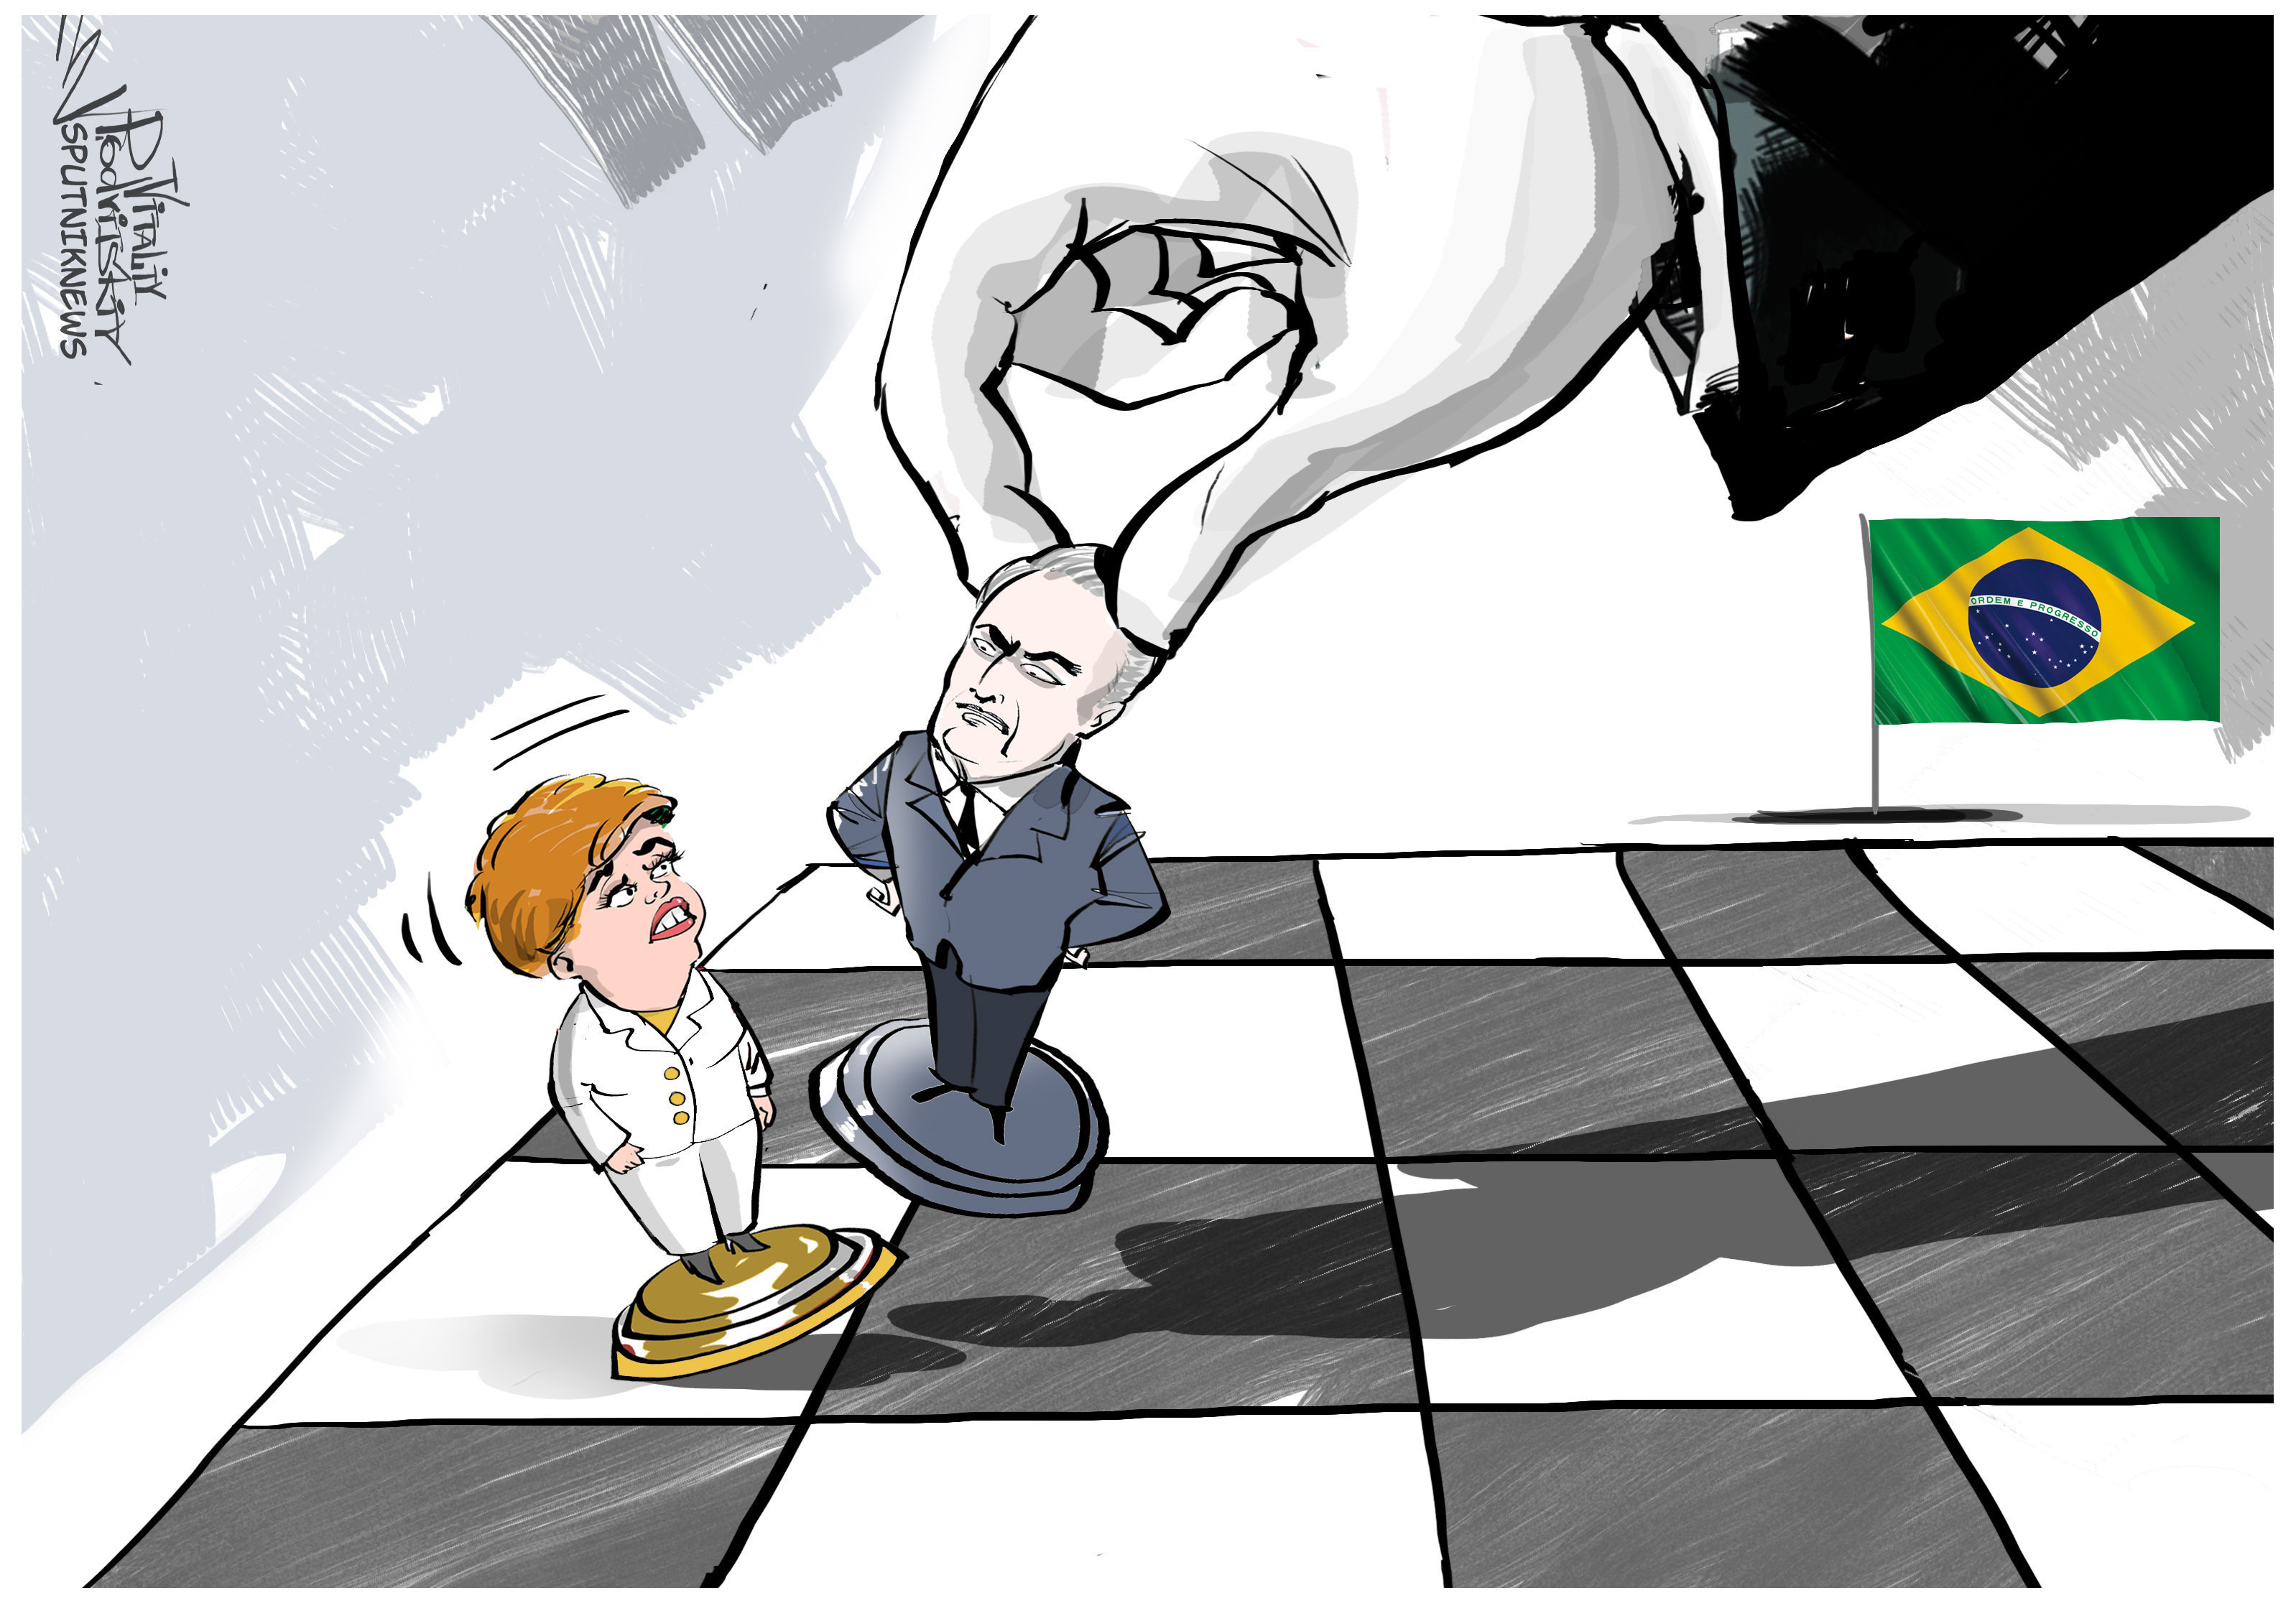 Destitution de Rousseff